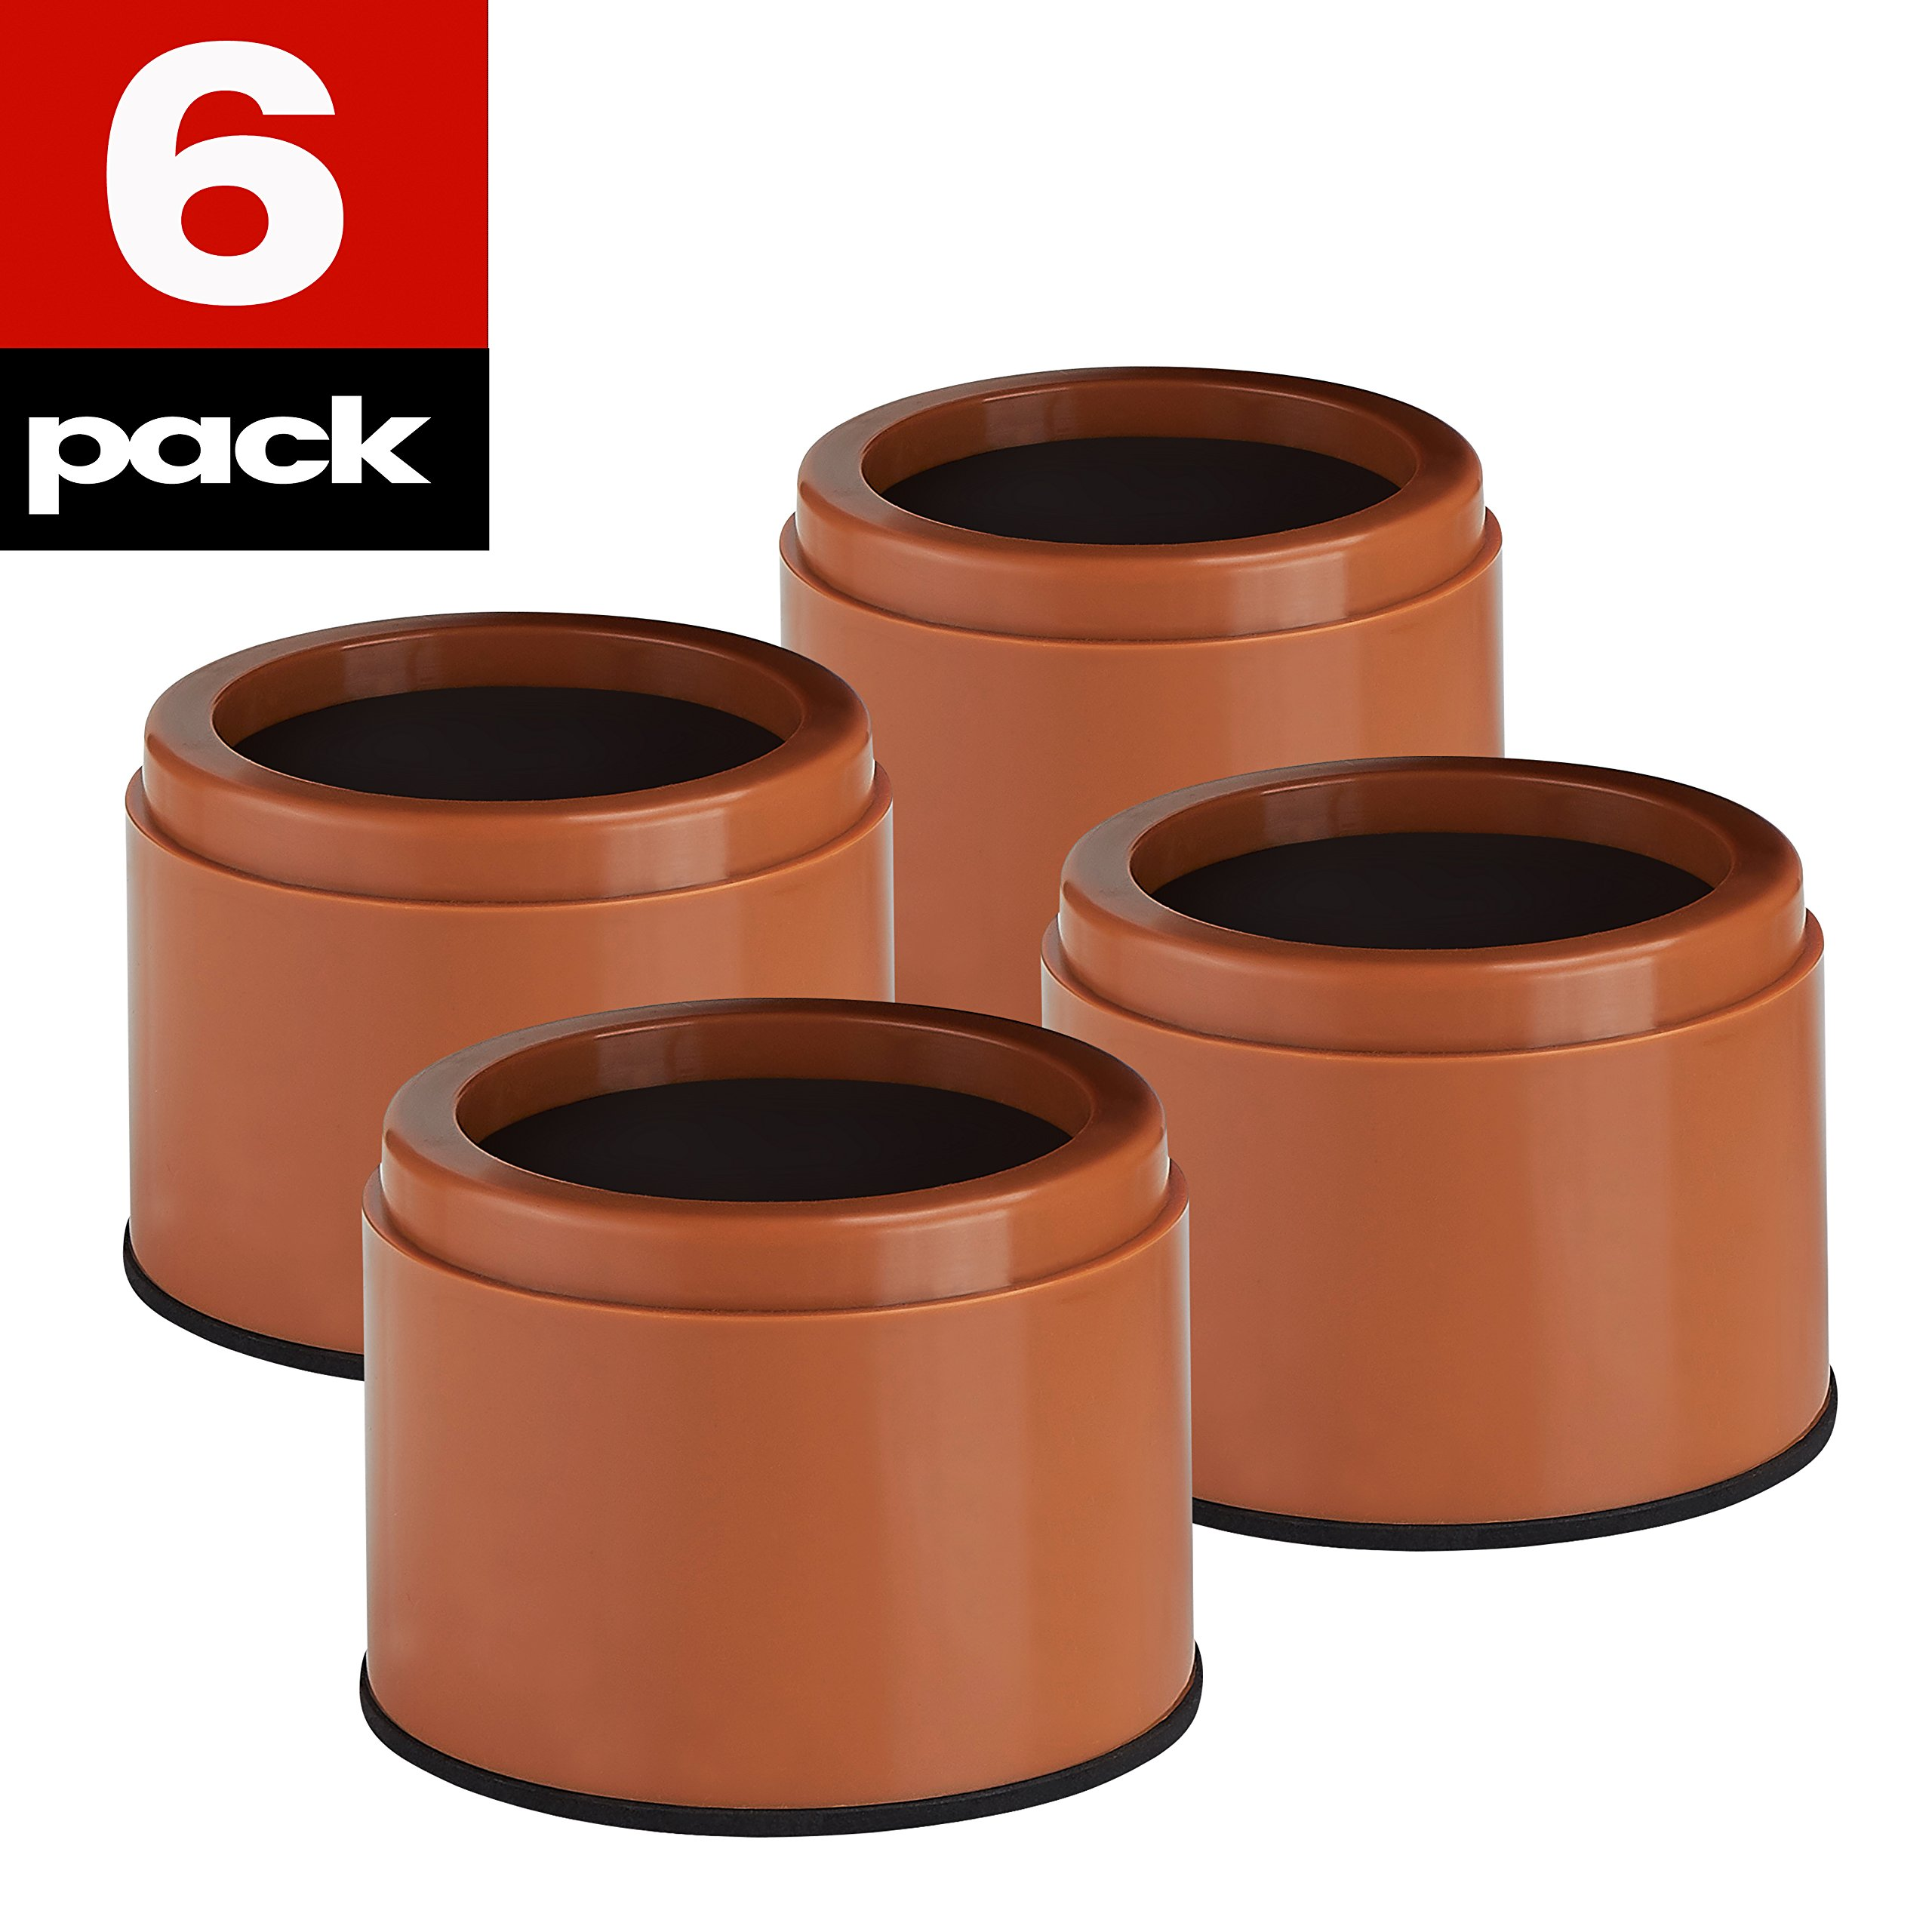 """iPrimio Bed and Furniture Risers – 6 Pack Round Elevator up to 3"""" & Lifts Up To 10,000 LBs - Protect Floors and Surfaces – Durable ABS Plastic and Anti Slip Foam Grip – NON STACKABLE – Brown"""